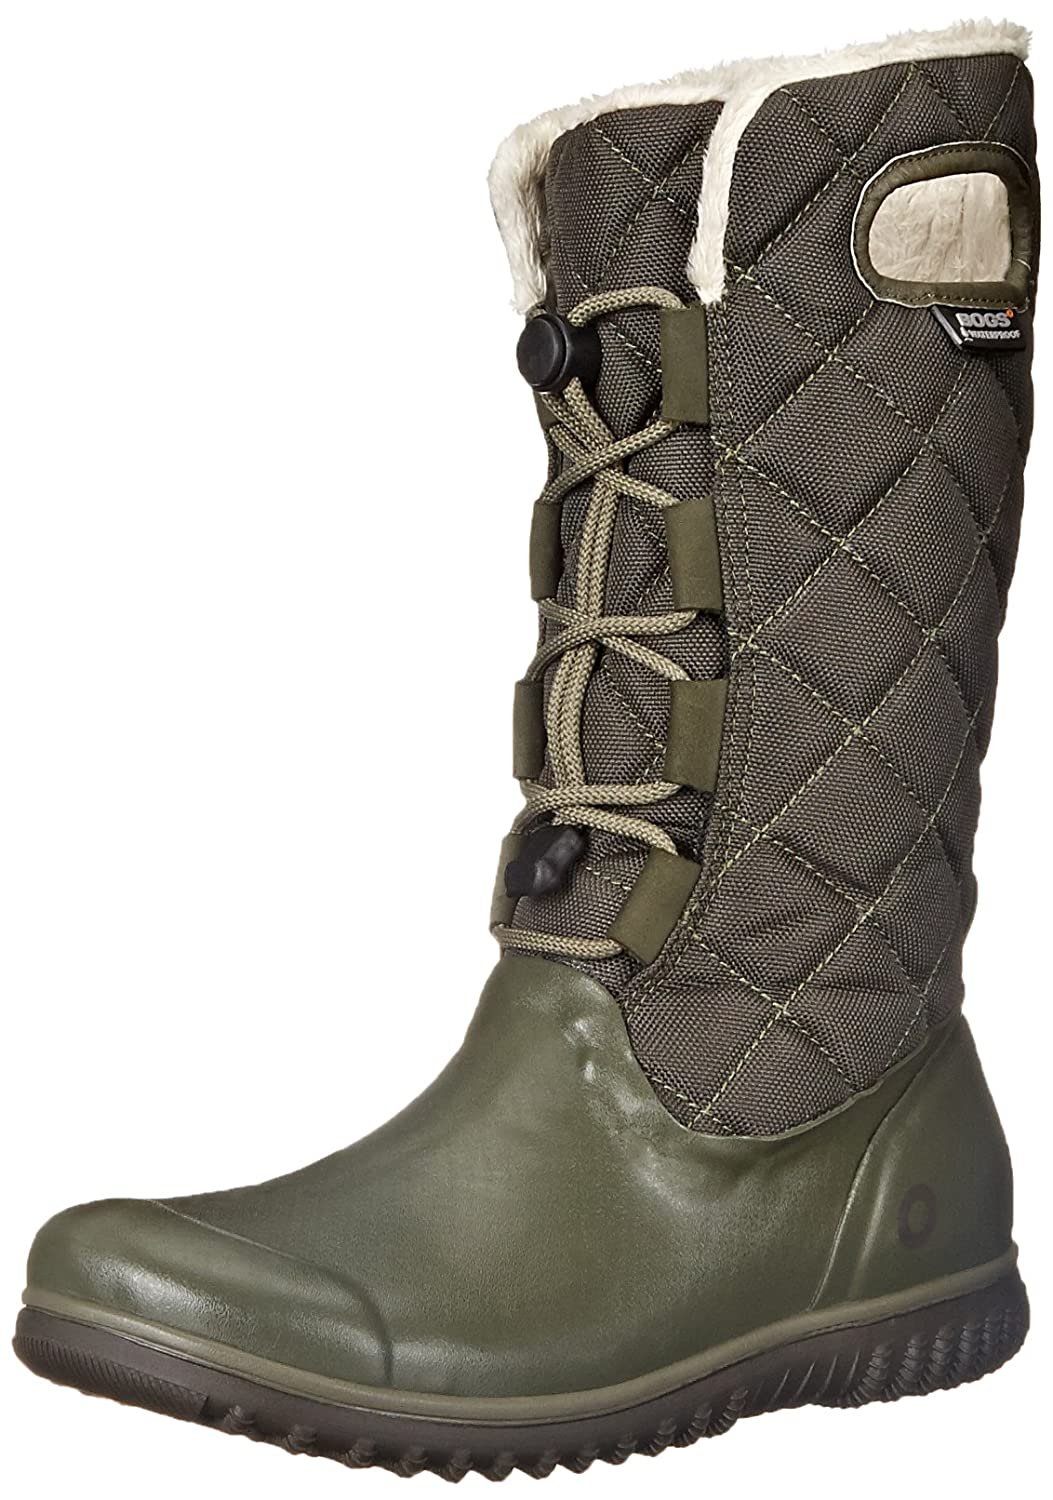 Bogs Women's Juno Lace Tall Winter Snow Boot B00QMLBOM4 11 B(M) US|Dark Green